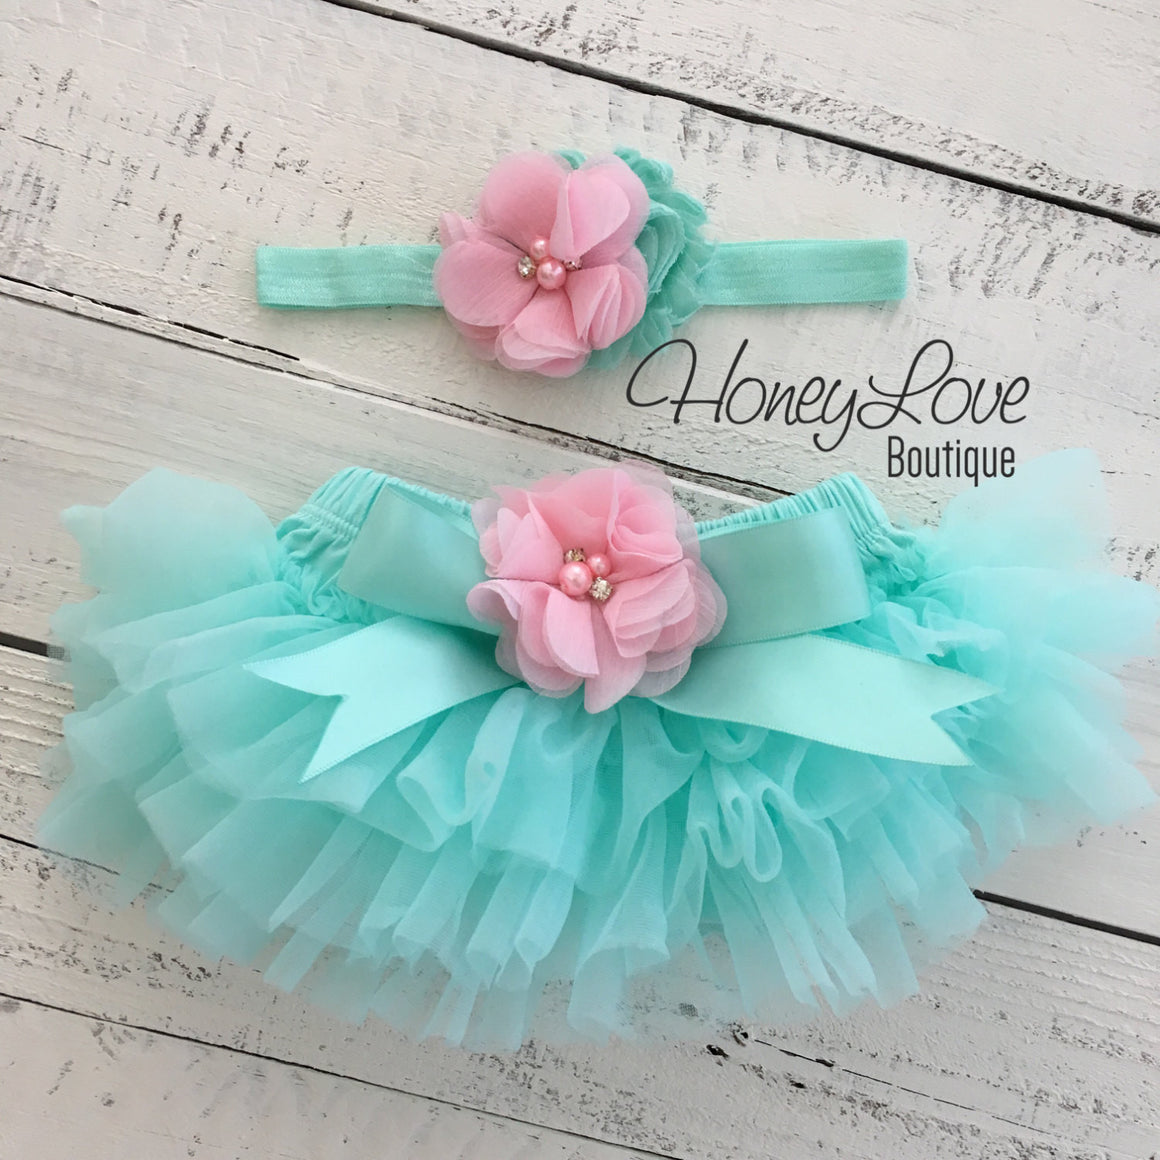 Mint/Aqua and Light Pink Embellished tutu skirt bloomers and headband - HoneyLoveBoutique